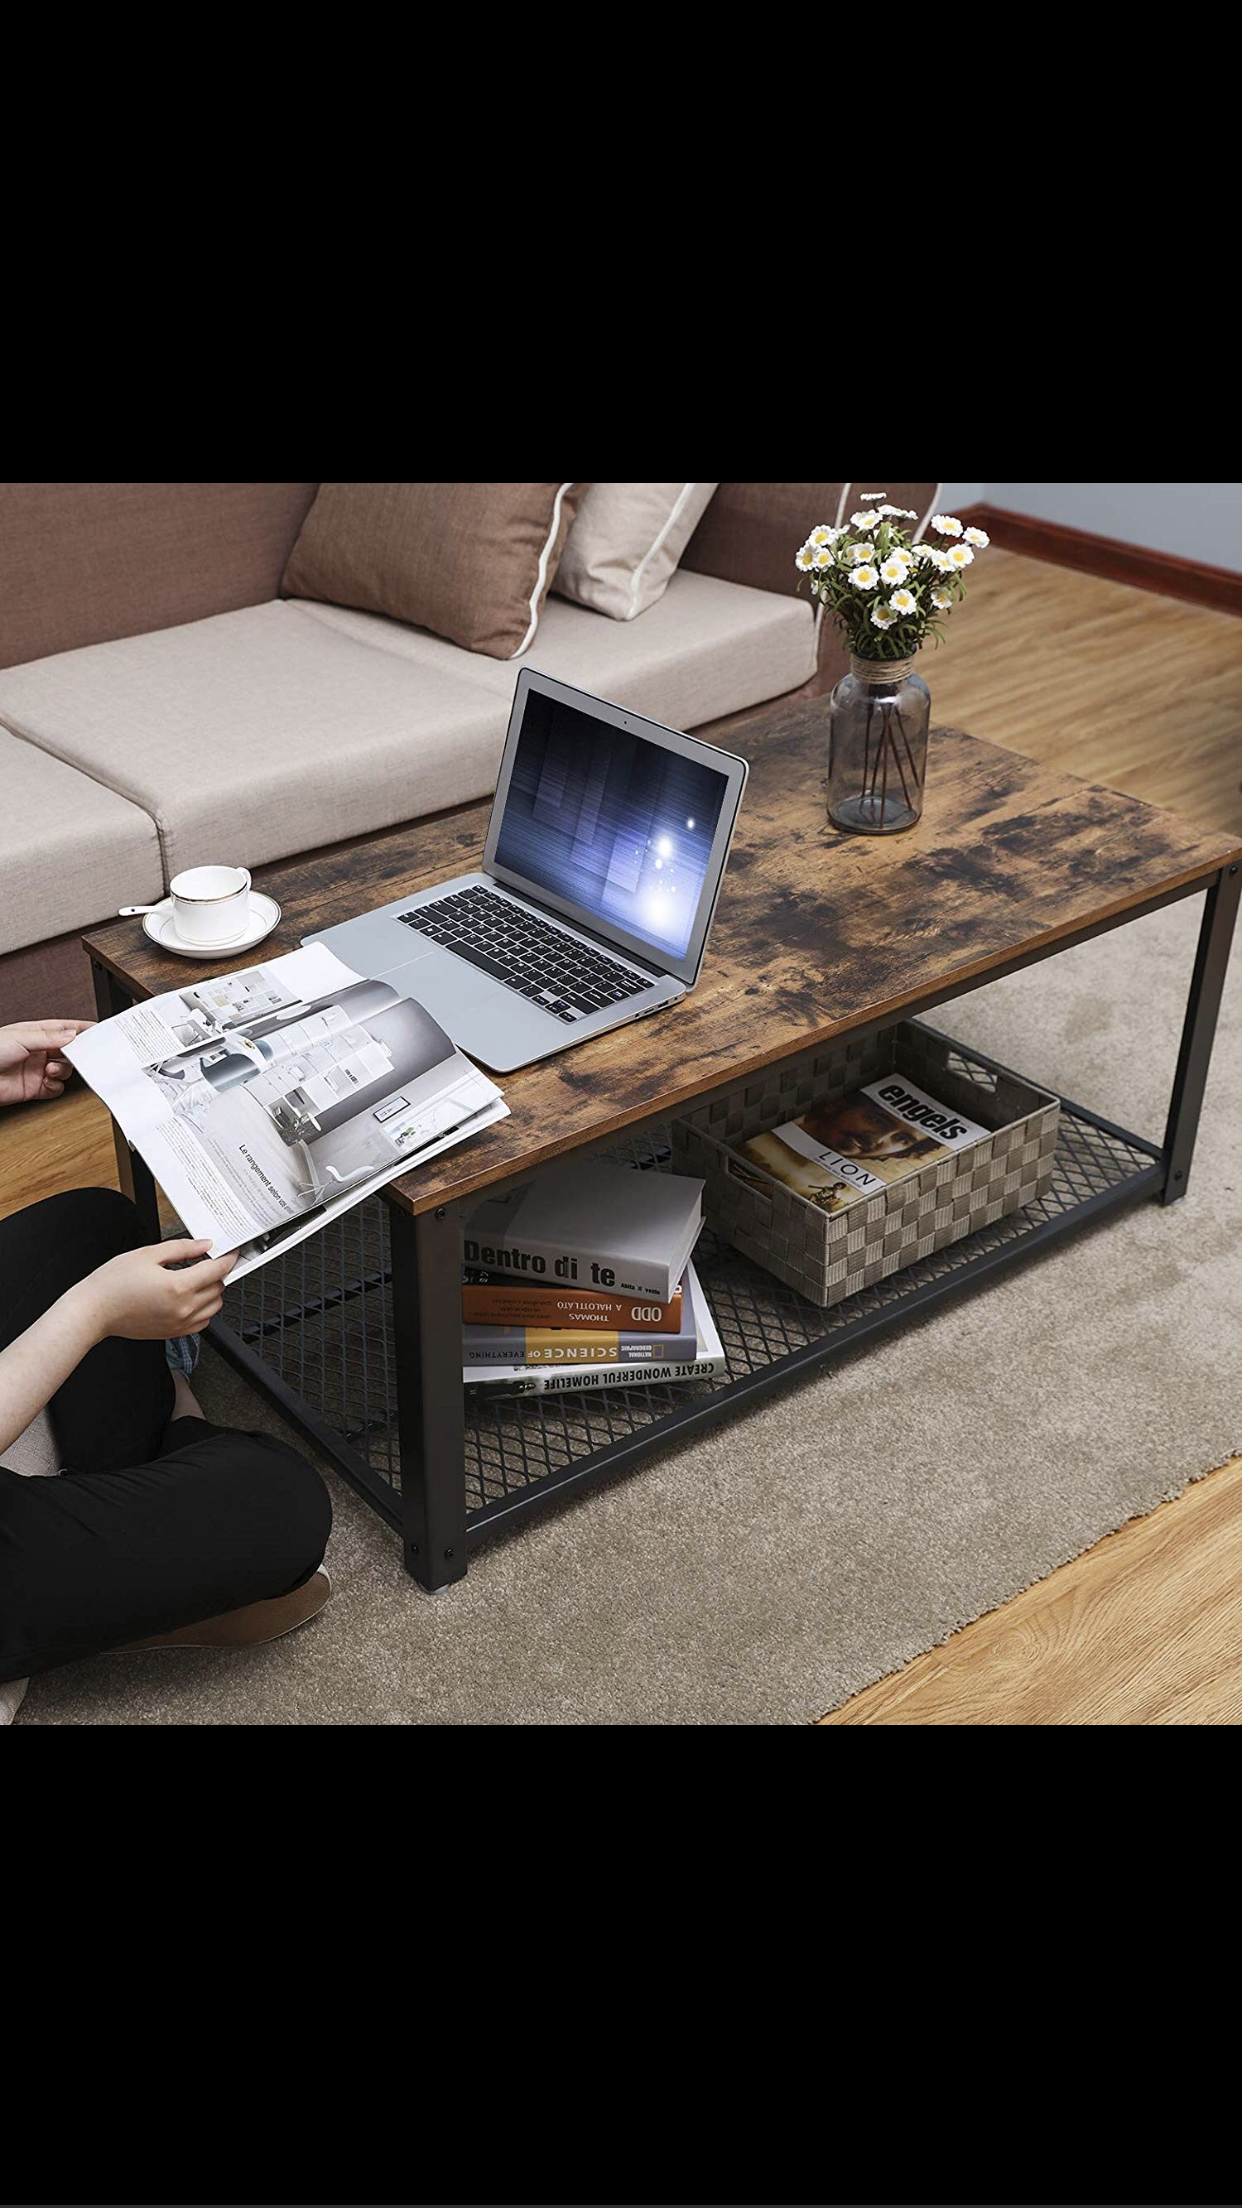 Industrial Coffee Table Modern Coffee Tables Coffee Table Table [ 2208 x 1242 Pixel ]